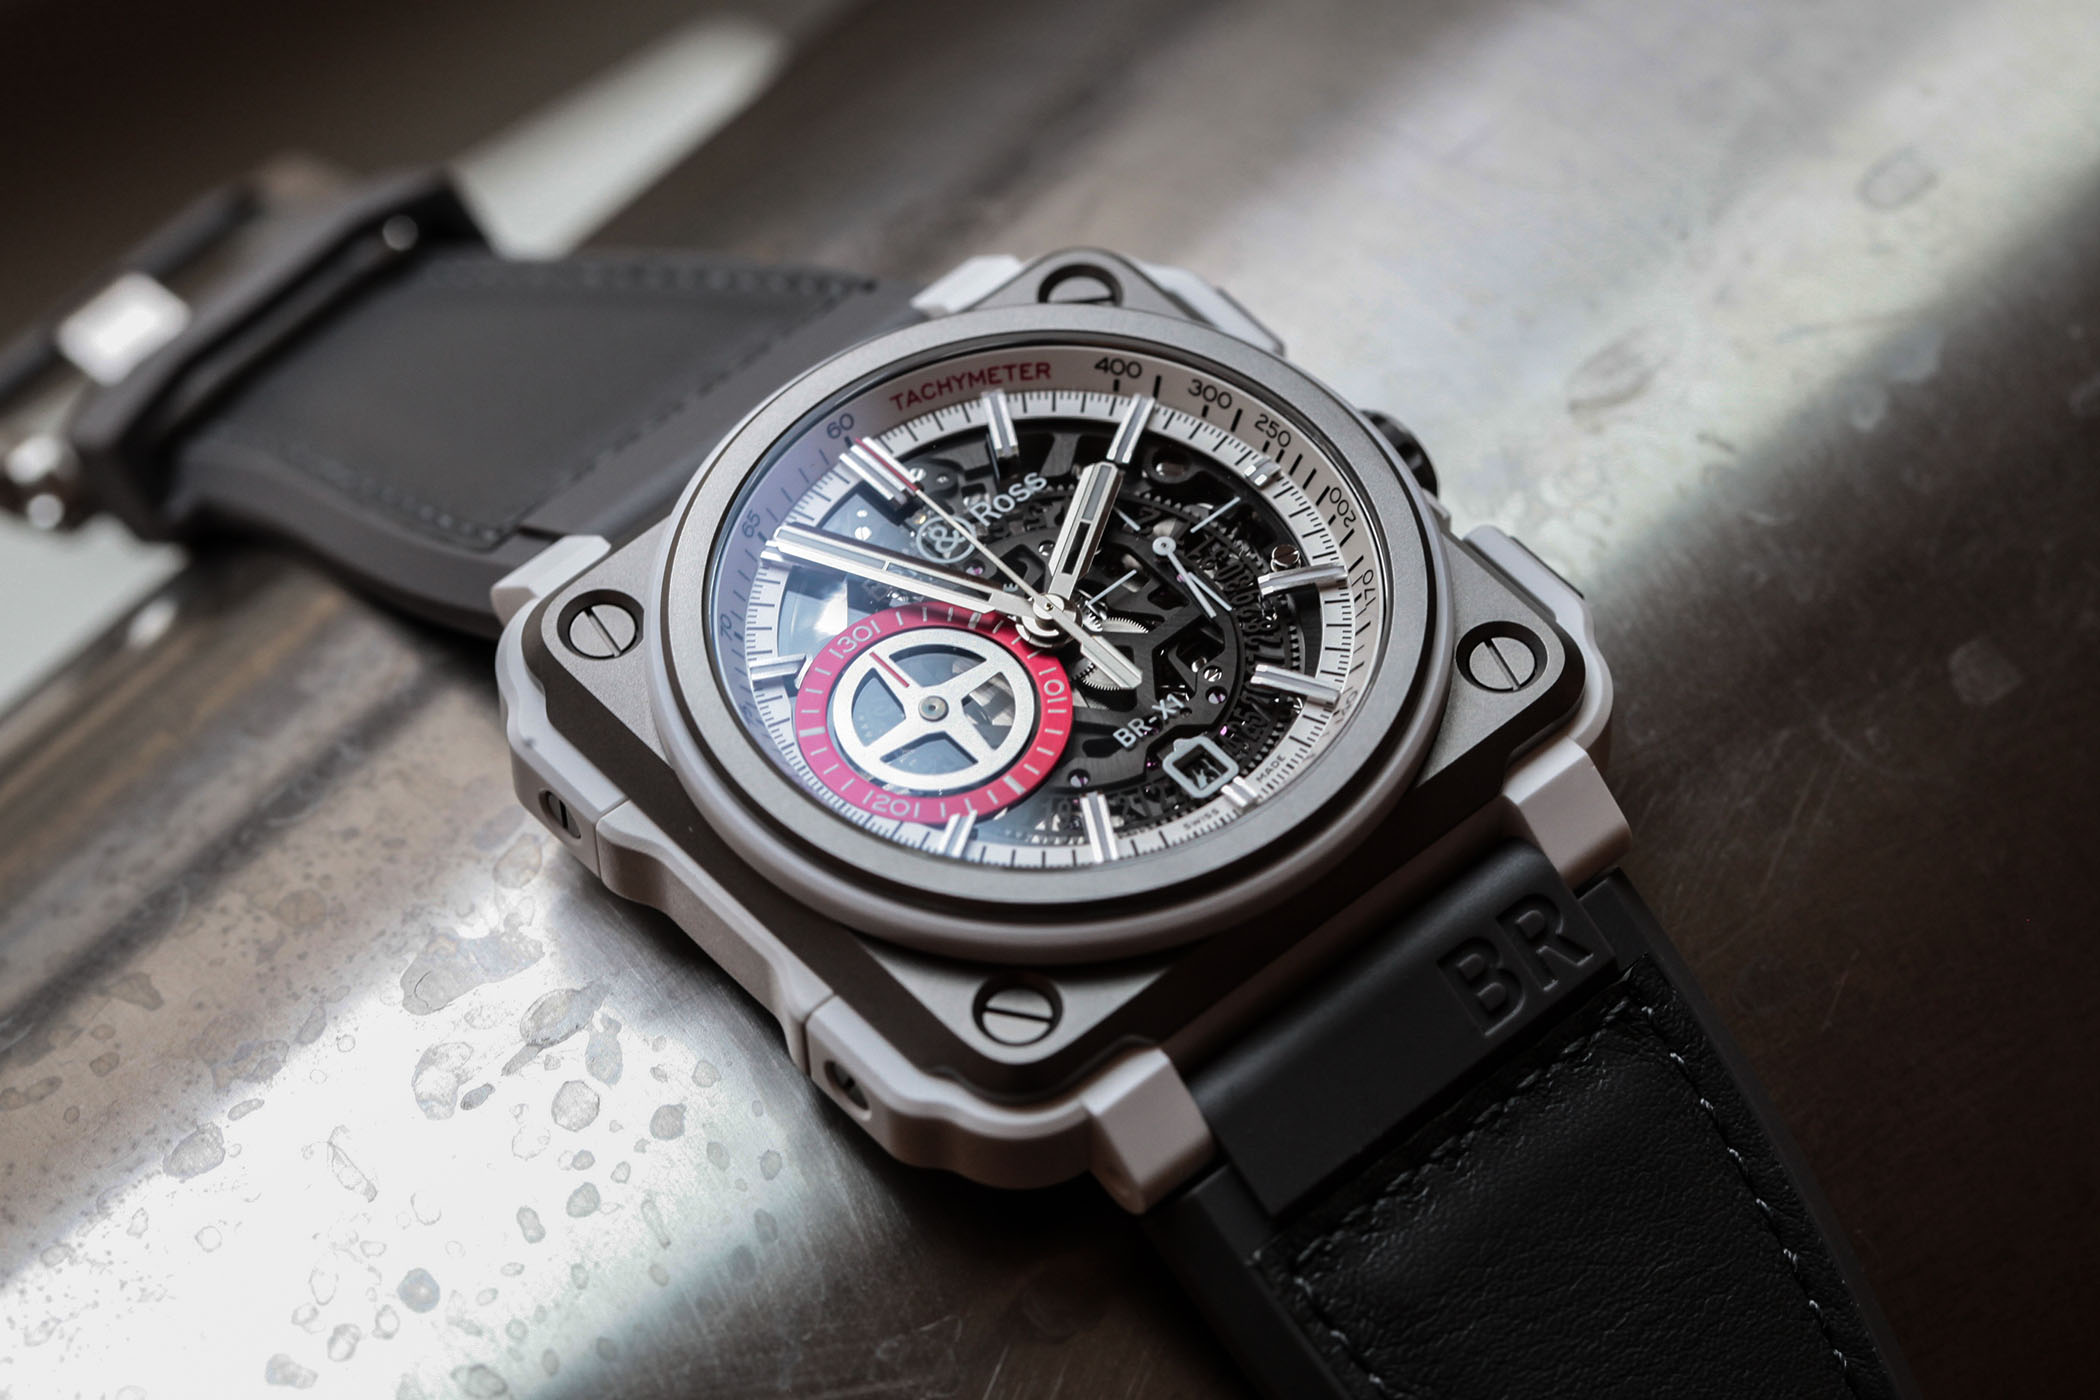 bfa4a47d1 Introducing - Bell & Ross BR-X1 White Hawk Skeleton Chronograph ...